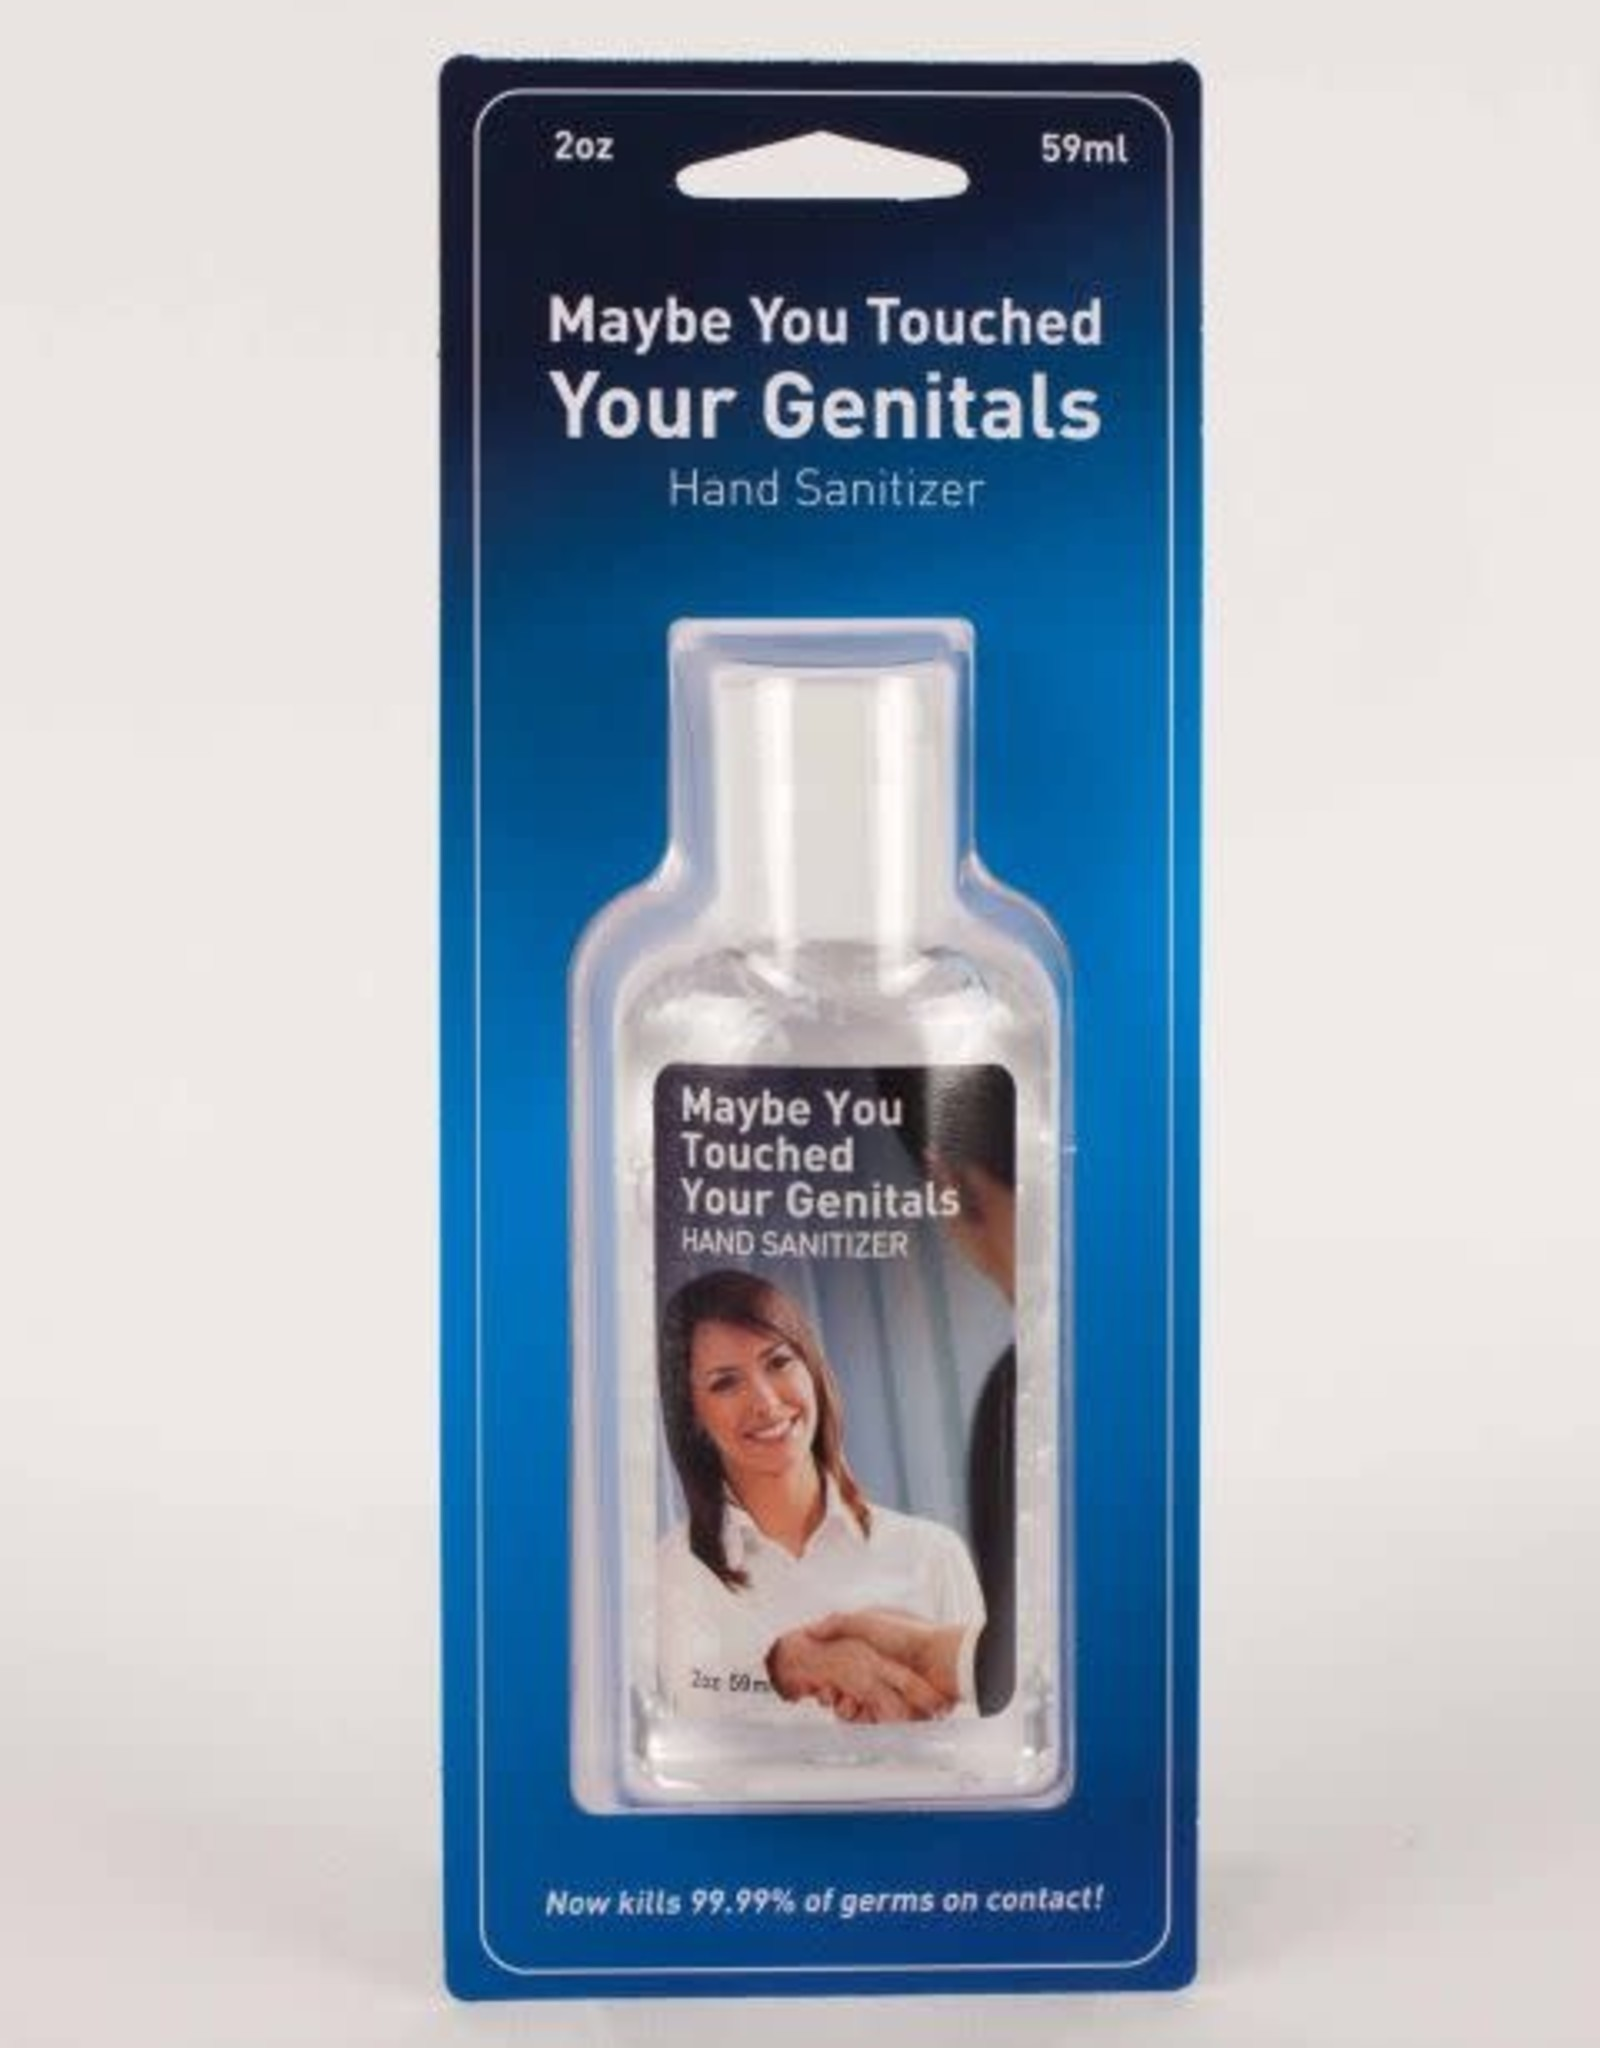 Sanitizer - Maybe You Touched Your Genitals